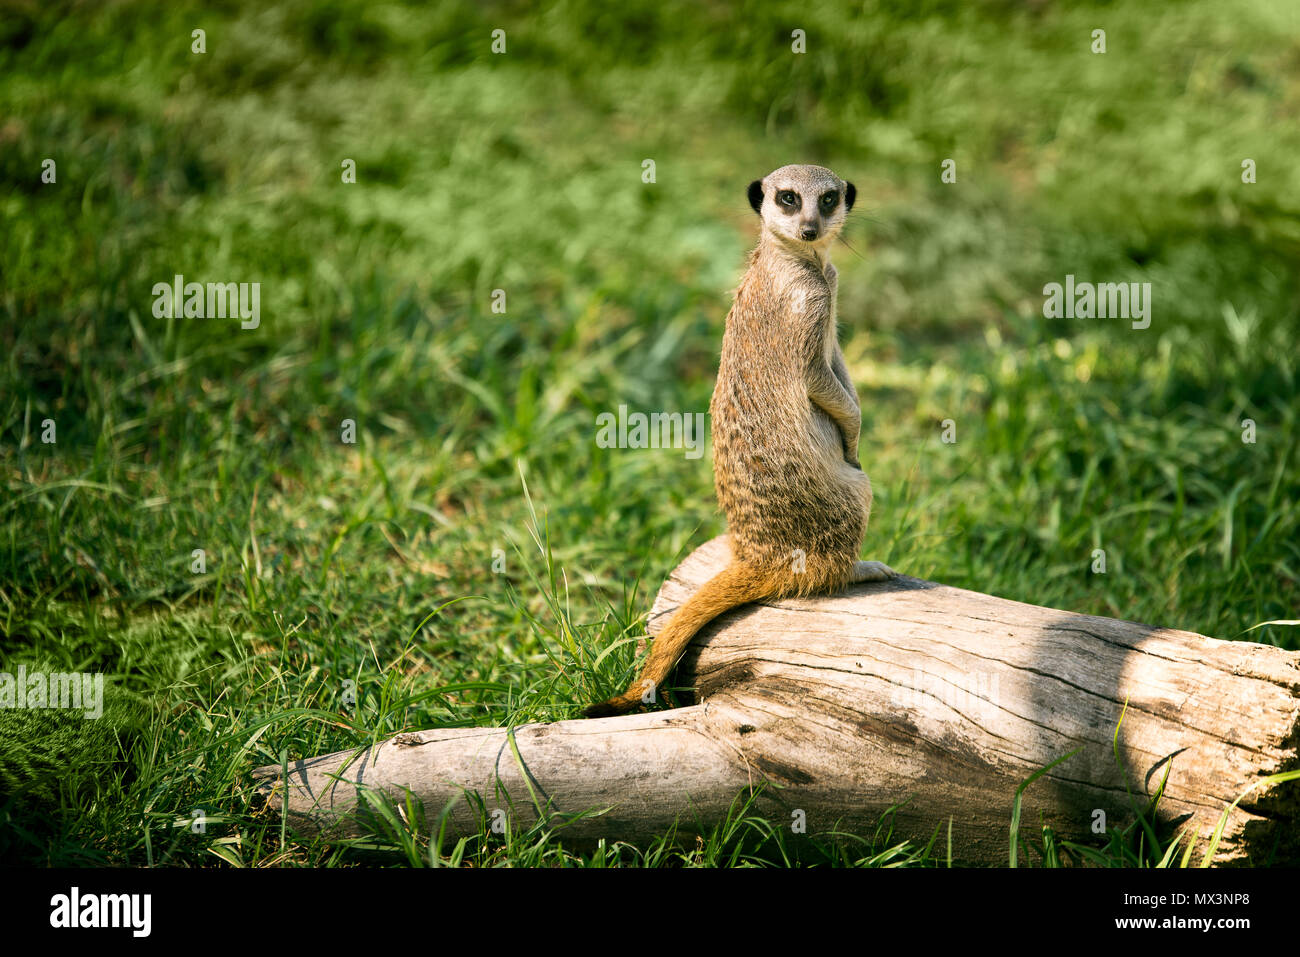 One meerkat on a watch standing in a meadow and looking at camera. - Stock Image